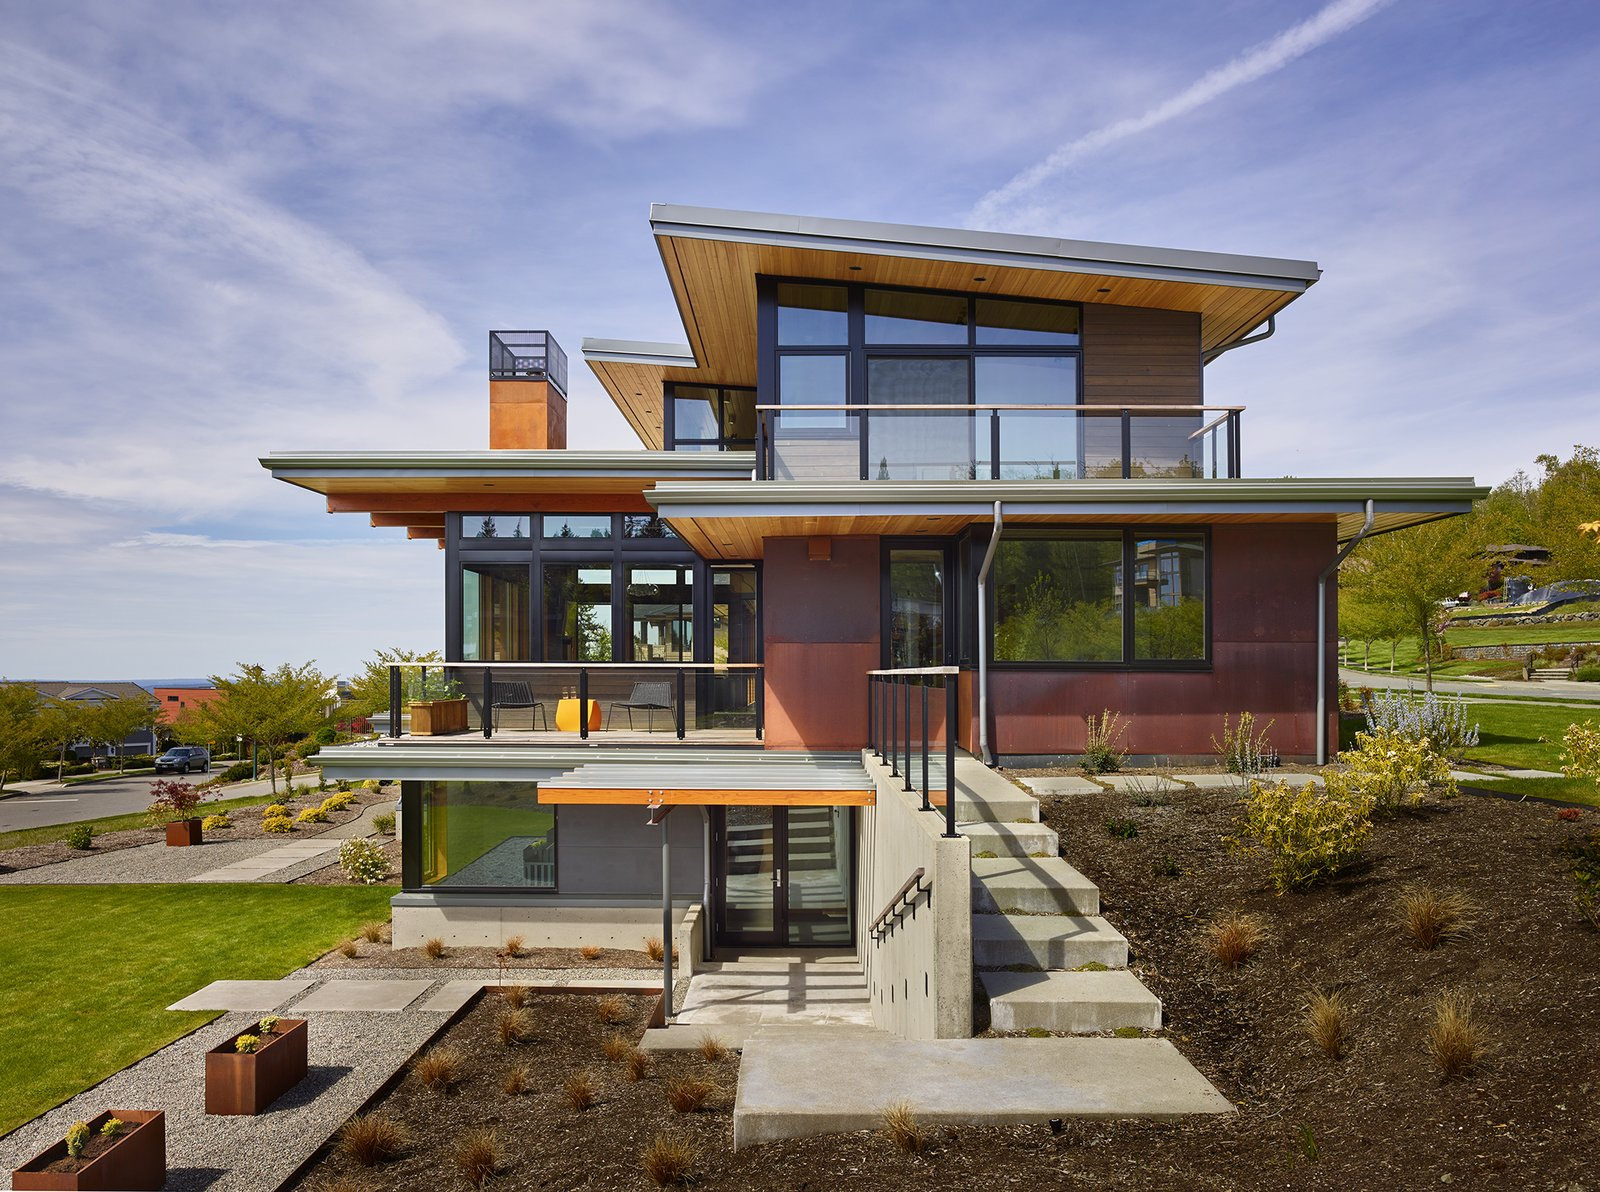 Outdoor  Issaquah Highlands Residence by Studio Zerbey Architecture